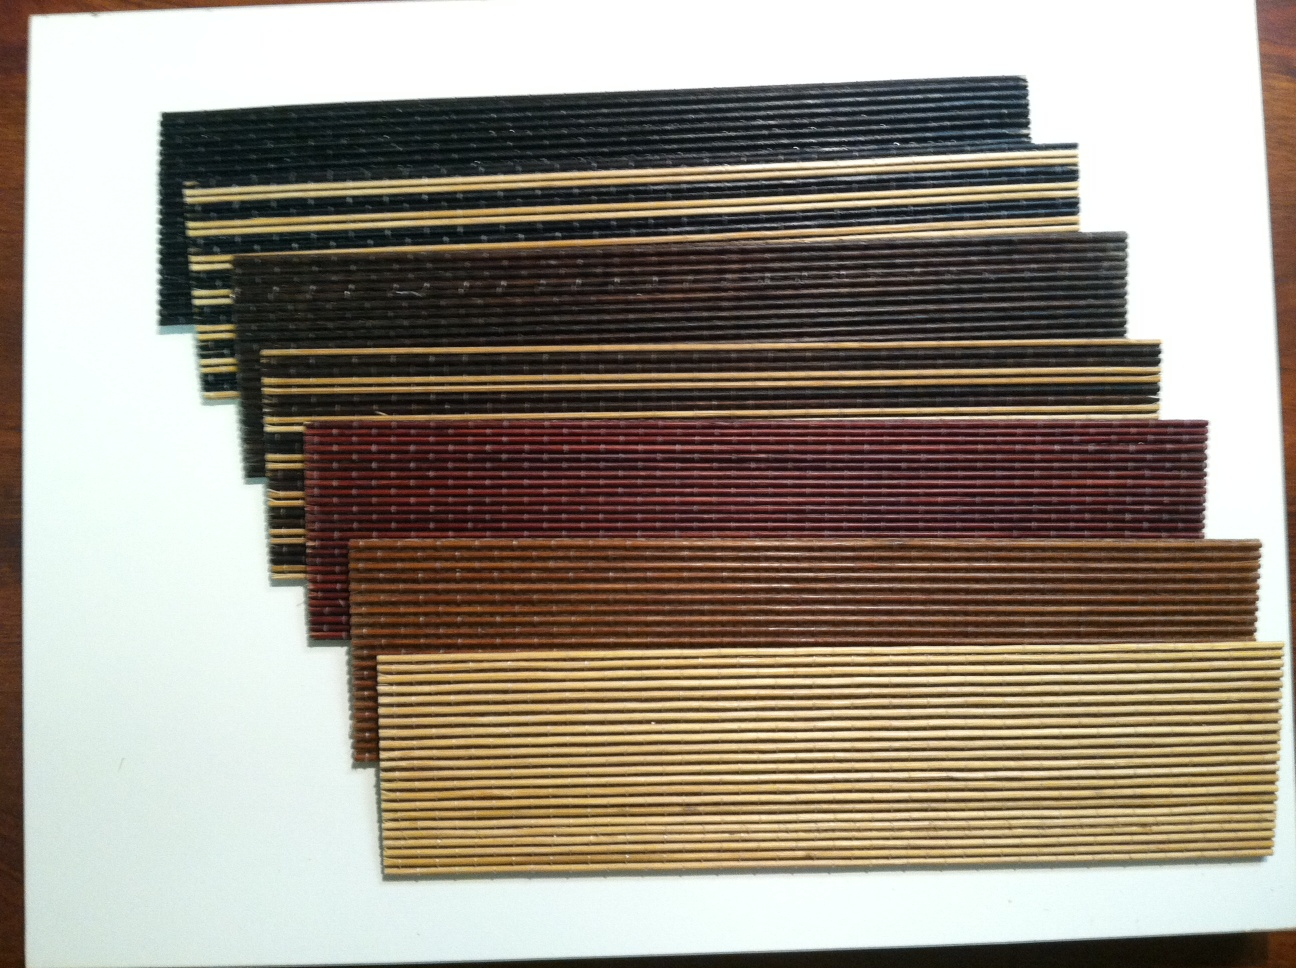 Budget Blinds Introduces New Woven Reed Blinds